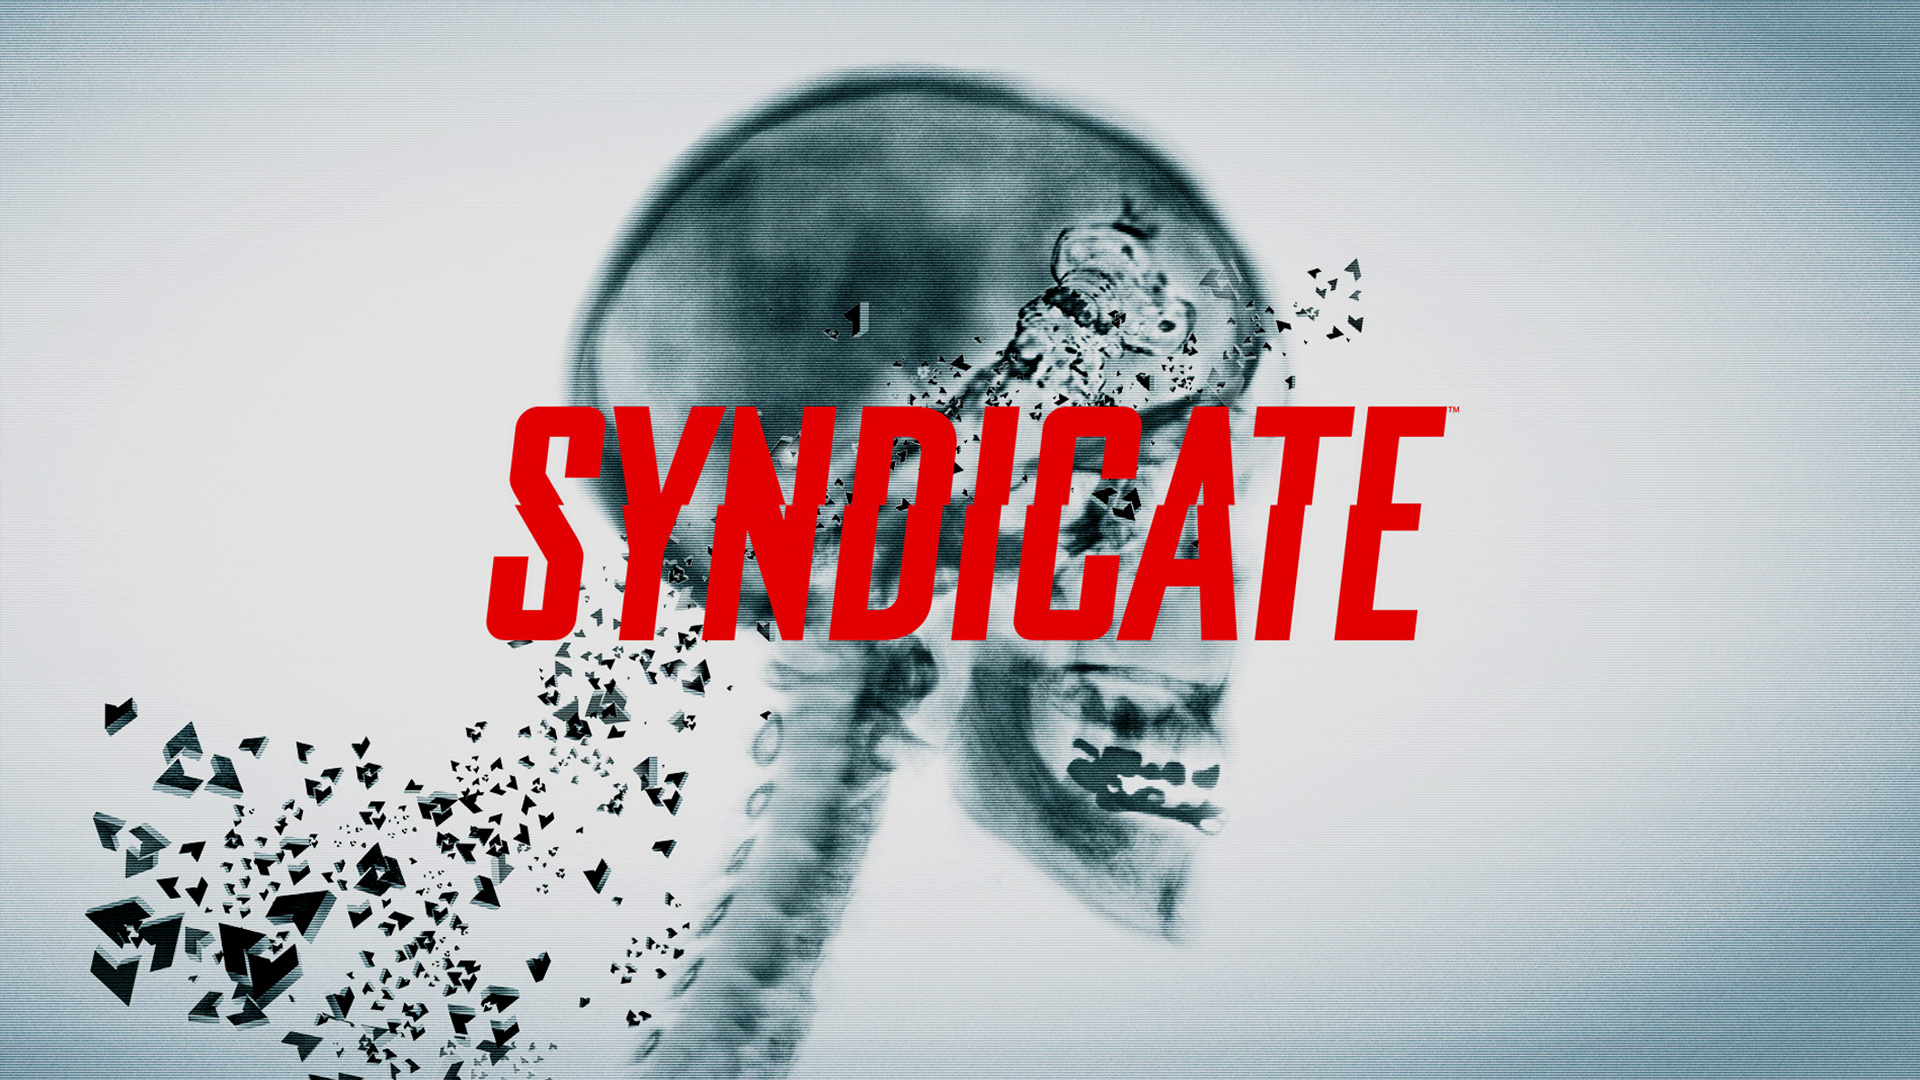 Syndicate Wallpaper in 1920x1080